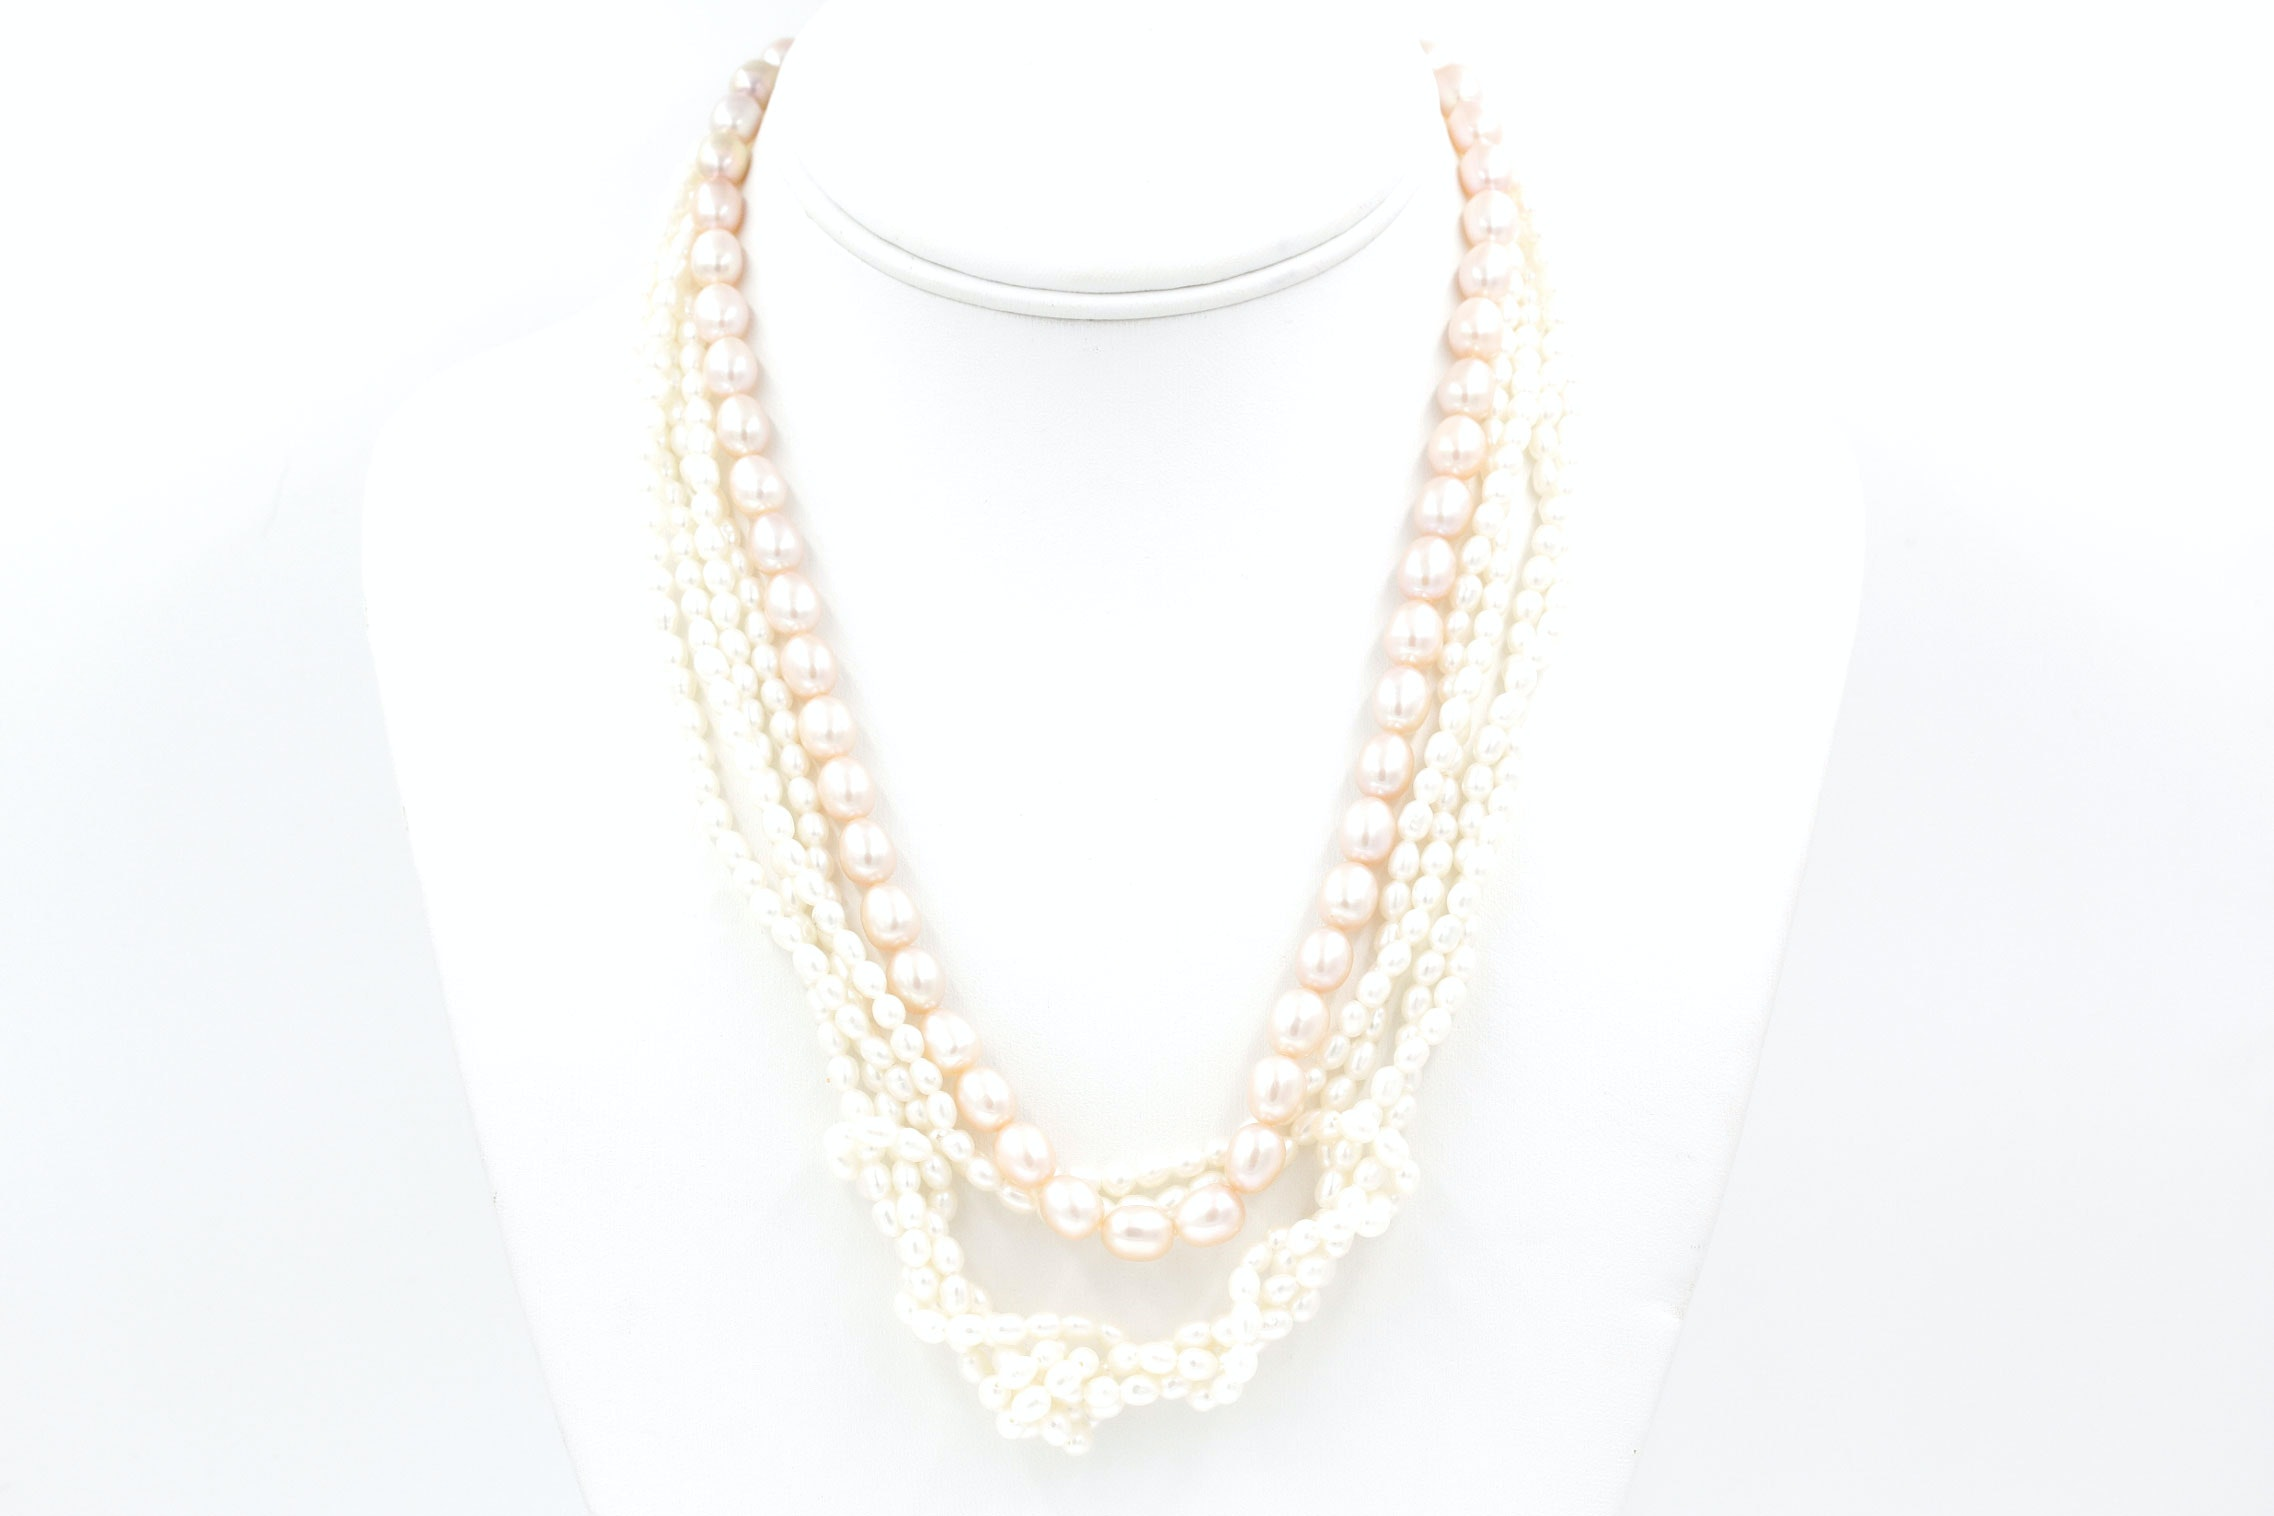 Pair of Freshwater Cultured Pearl Necklaces